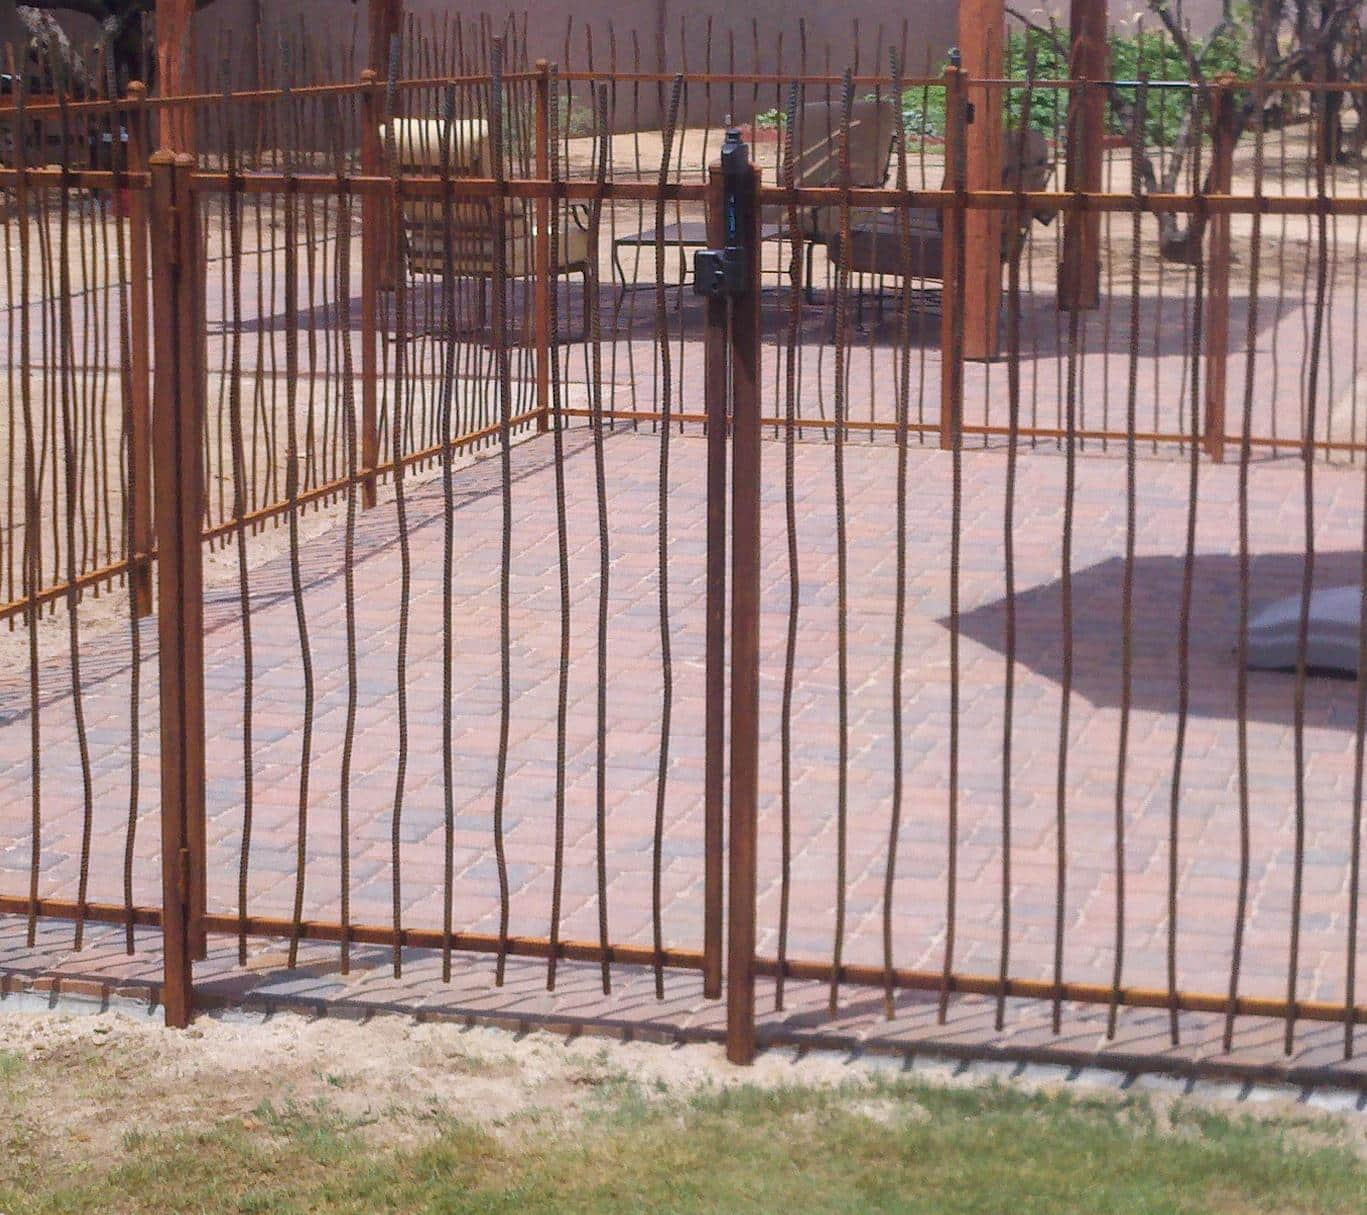 Rust iron gate and fence wavy rebar IF305-2 Rebar - Dog enclosure